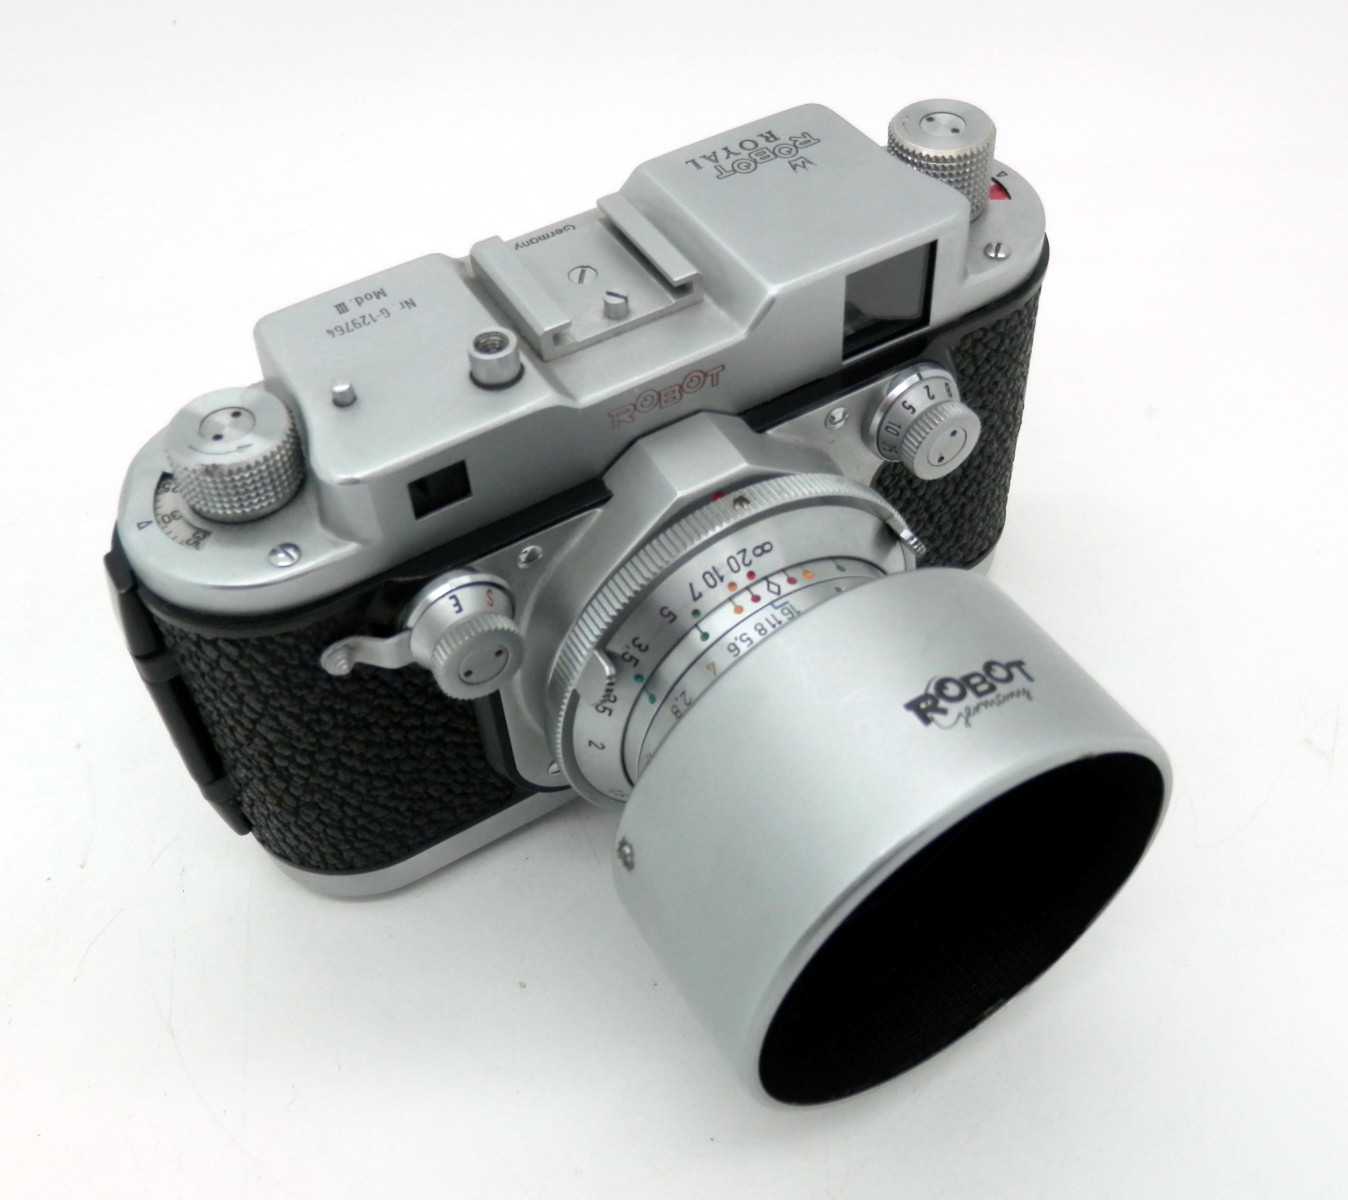 Robot Royal Mod 111 with Xenon 40mm F1.9 Lens - Click Image to Close